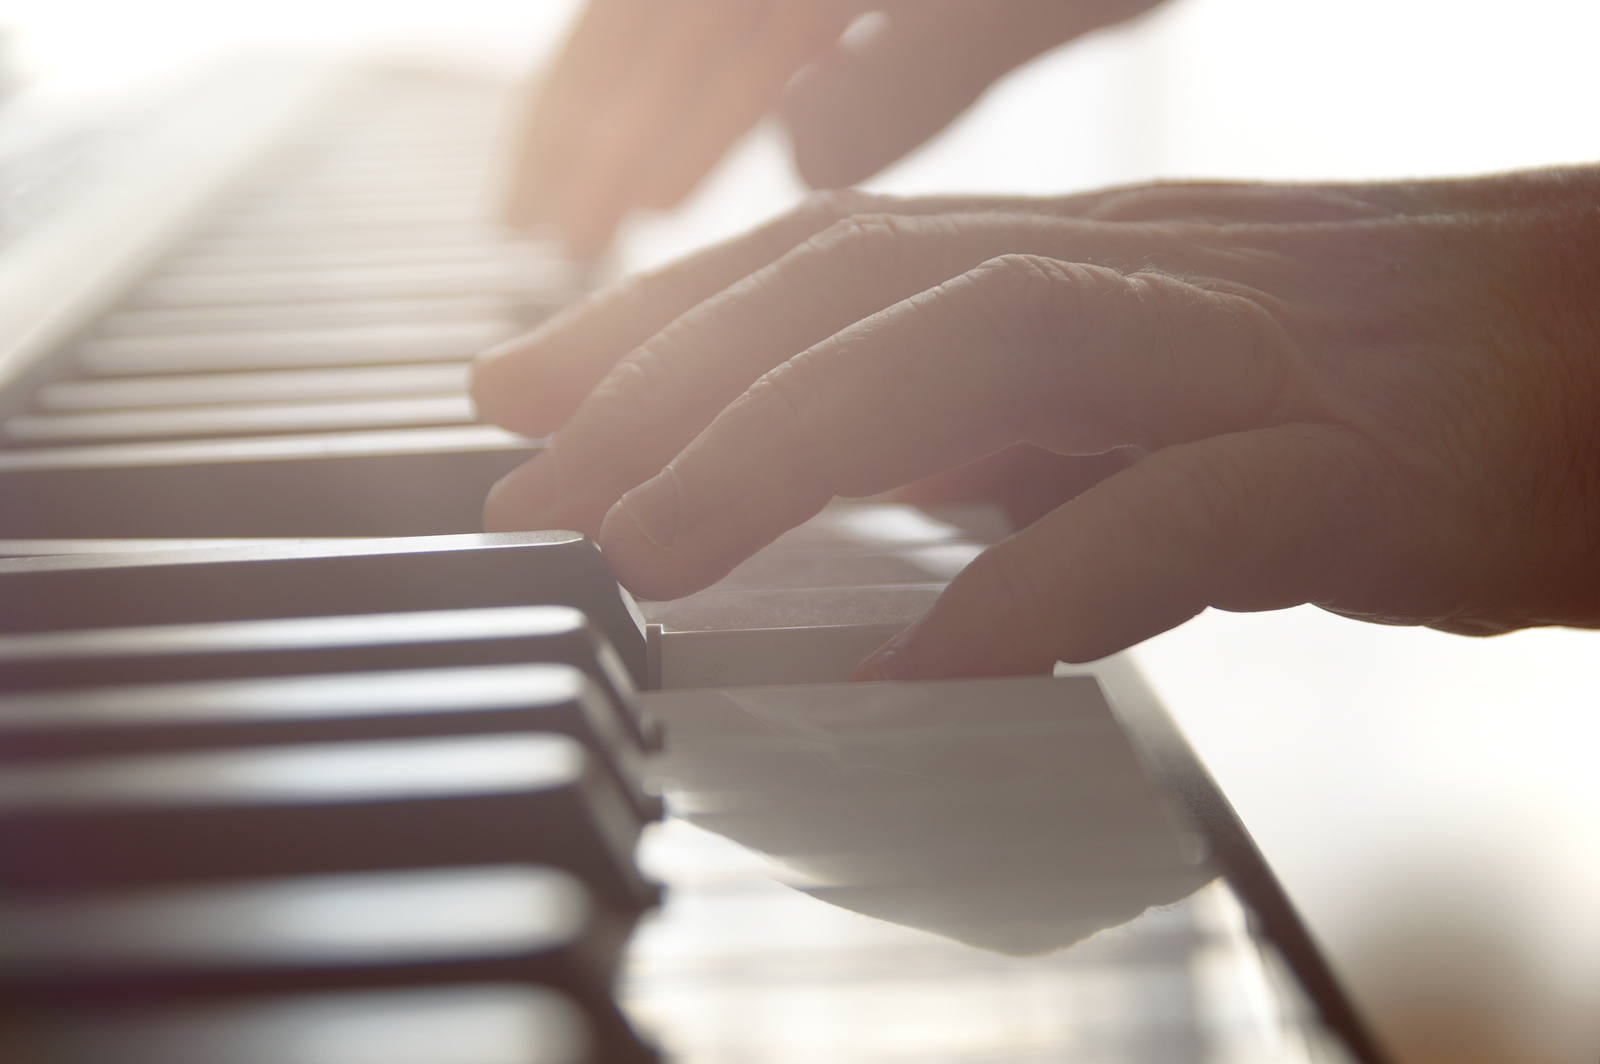 Hands playing a piano against a sunlight lighting at a music lesson in a class.